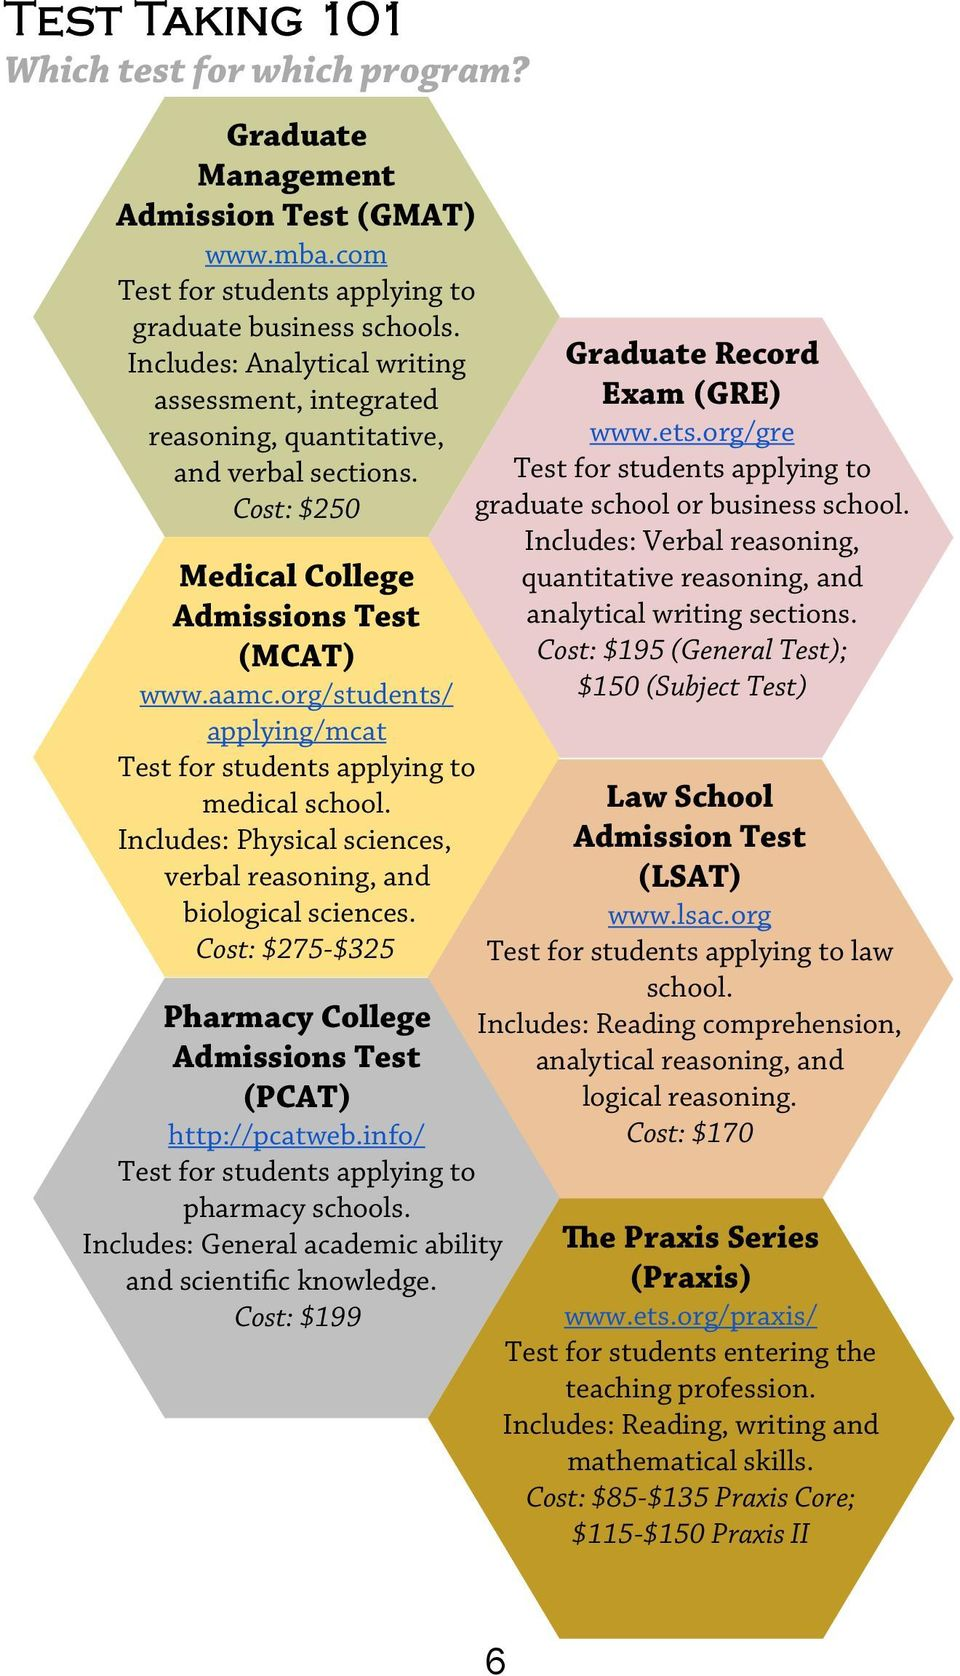 org/students/ applying/mcat Test for students applying to medical school. Includes: Physical sciences, verbal reasoning, and biological sciences.